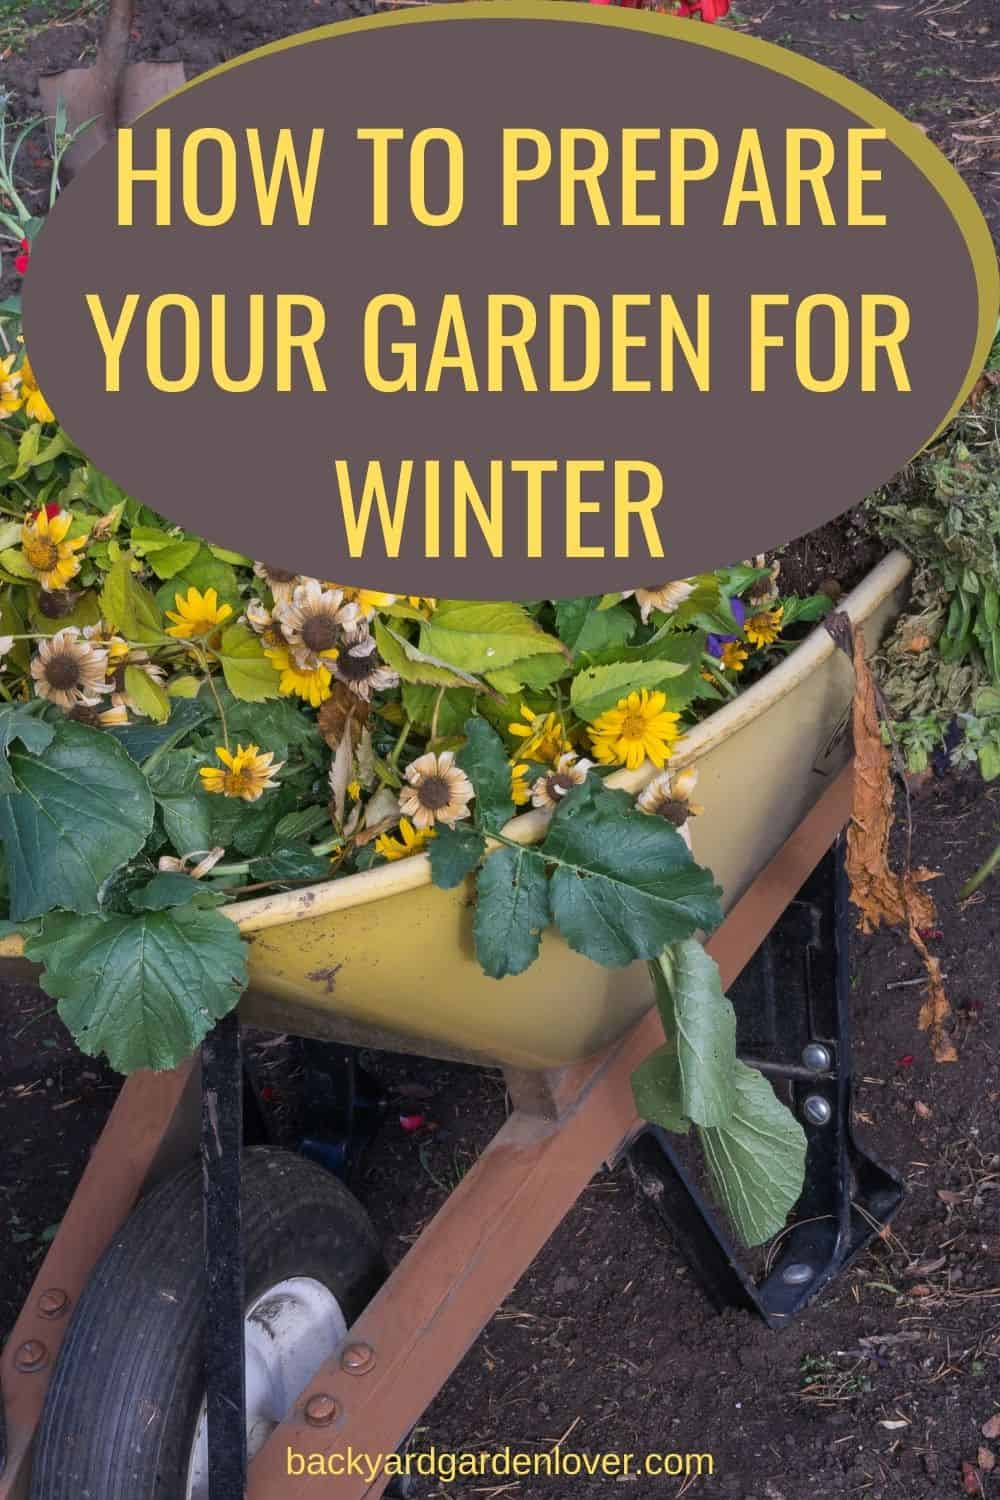 How to prepare your garden for winter - Pinteress image